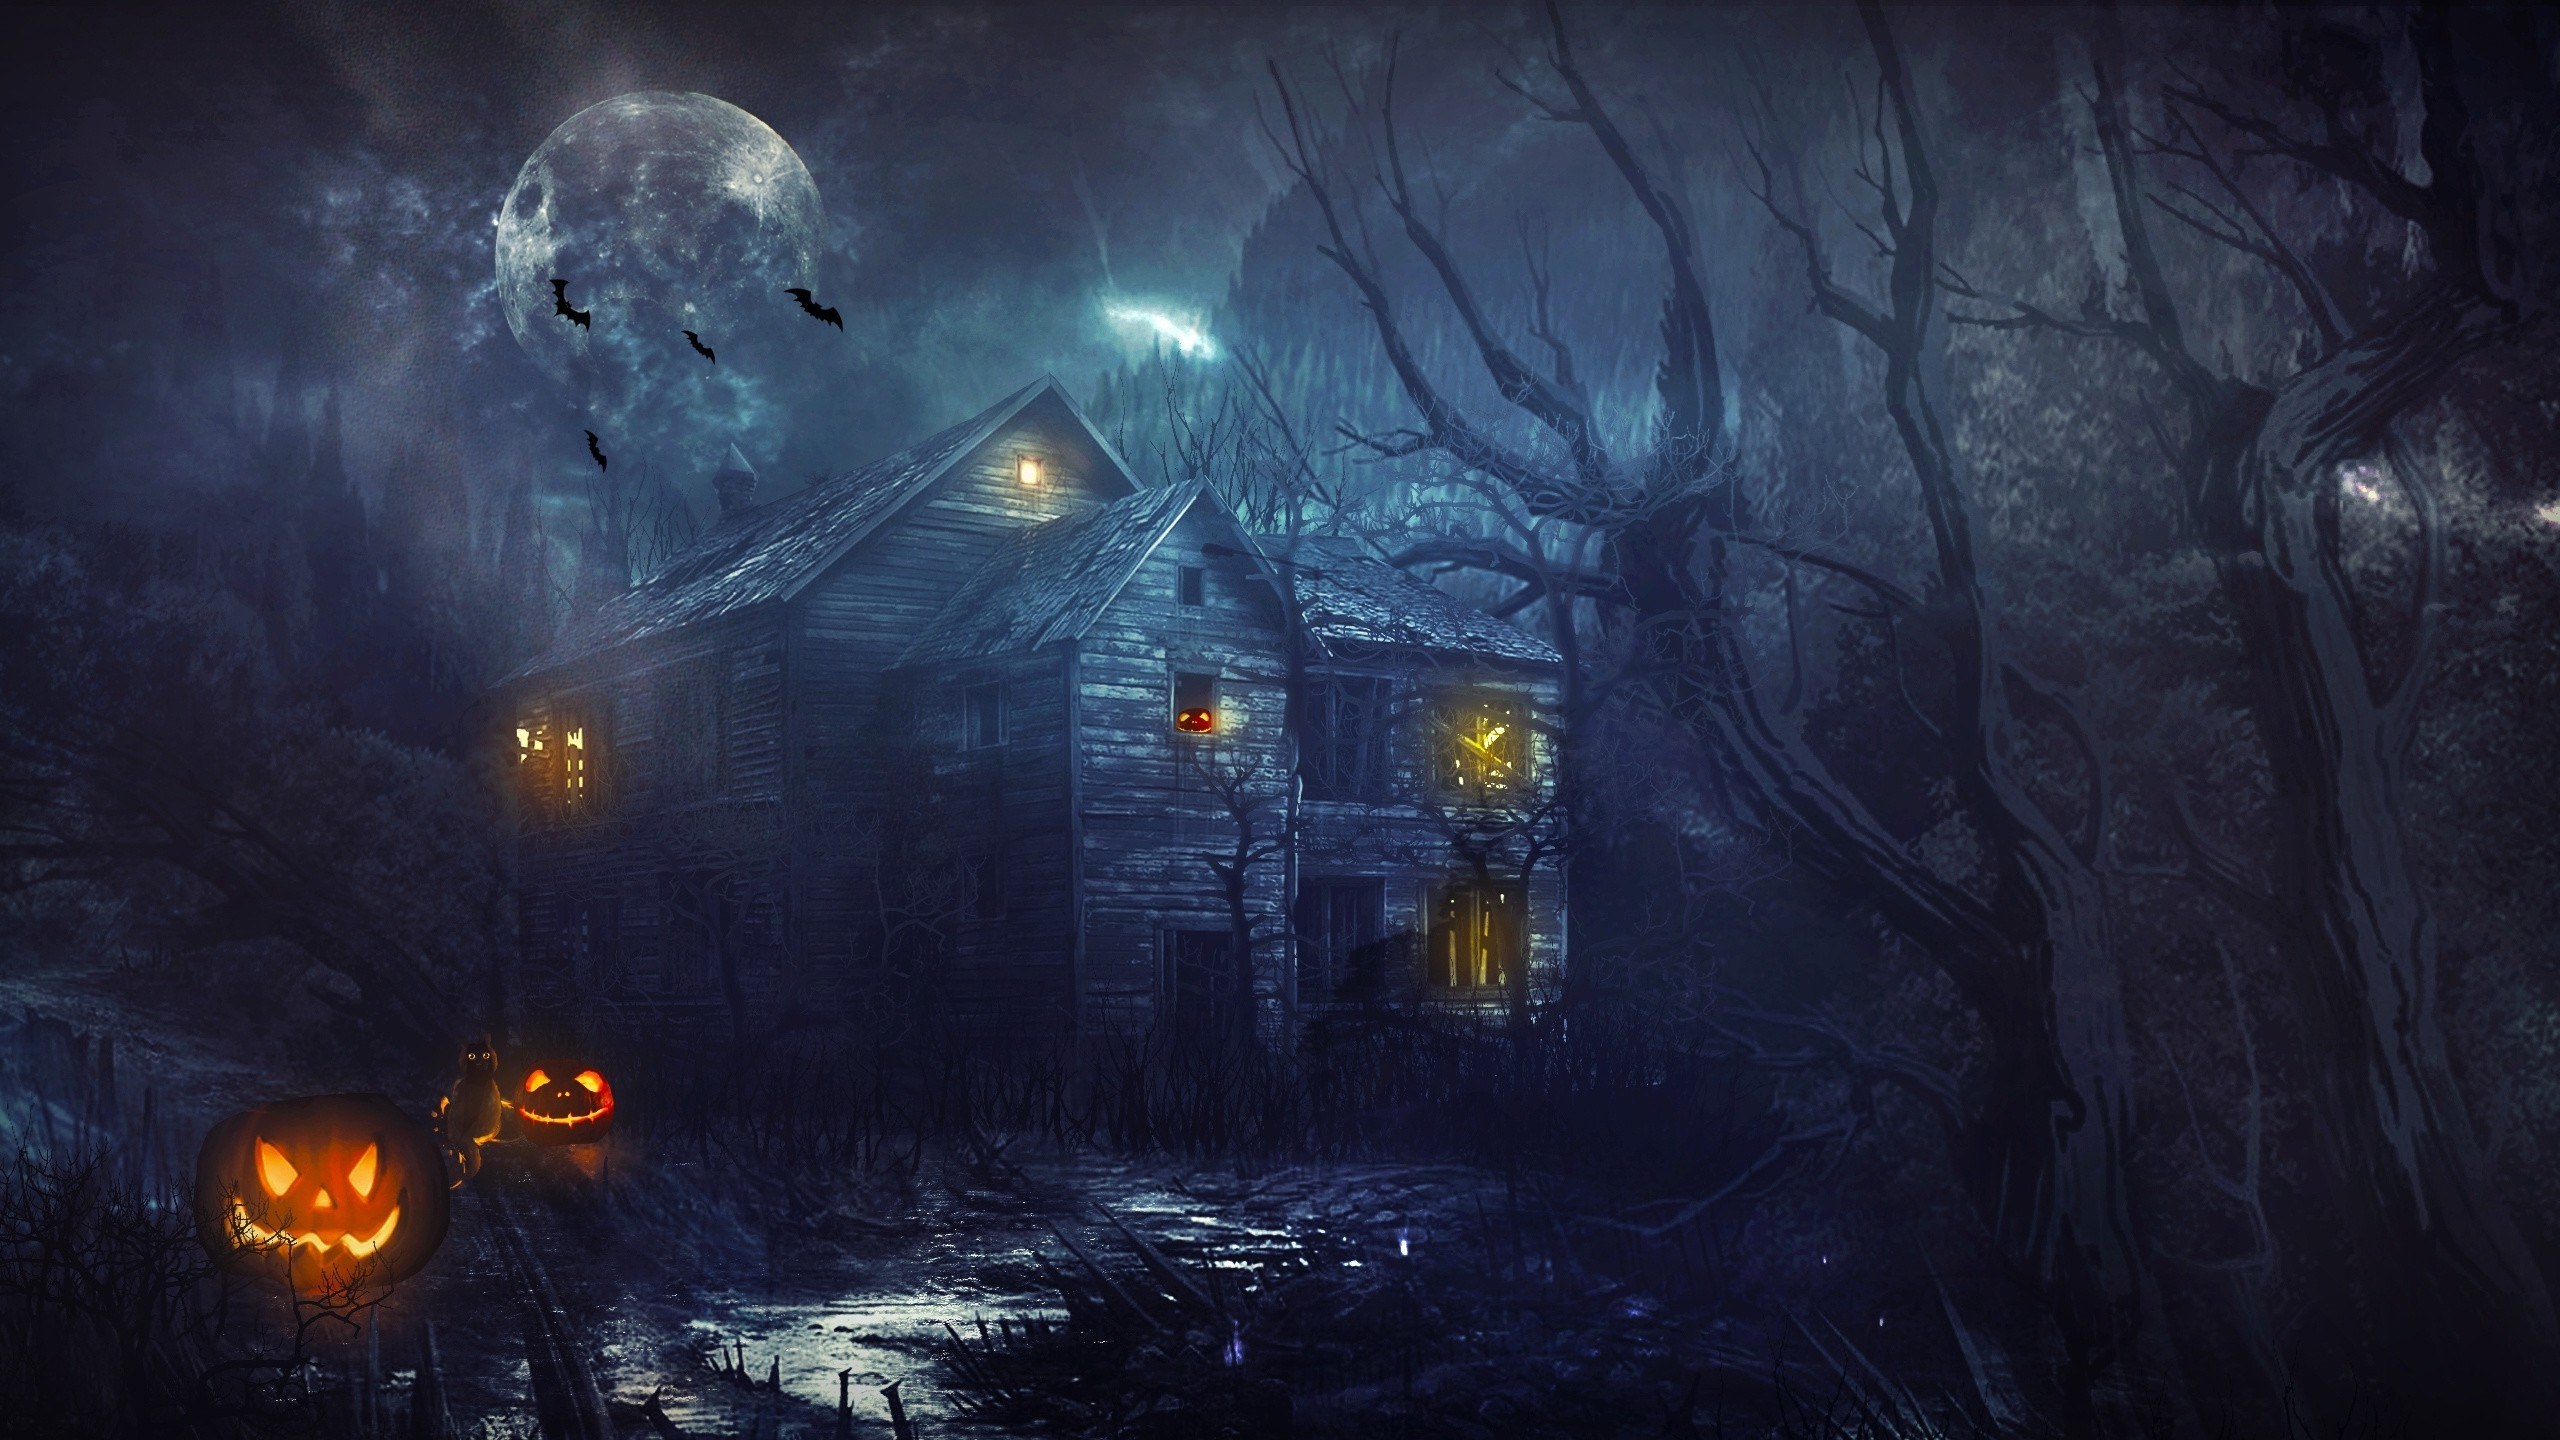 Res: 2560x1440, Haunted house wallpaper